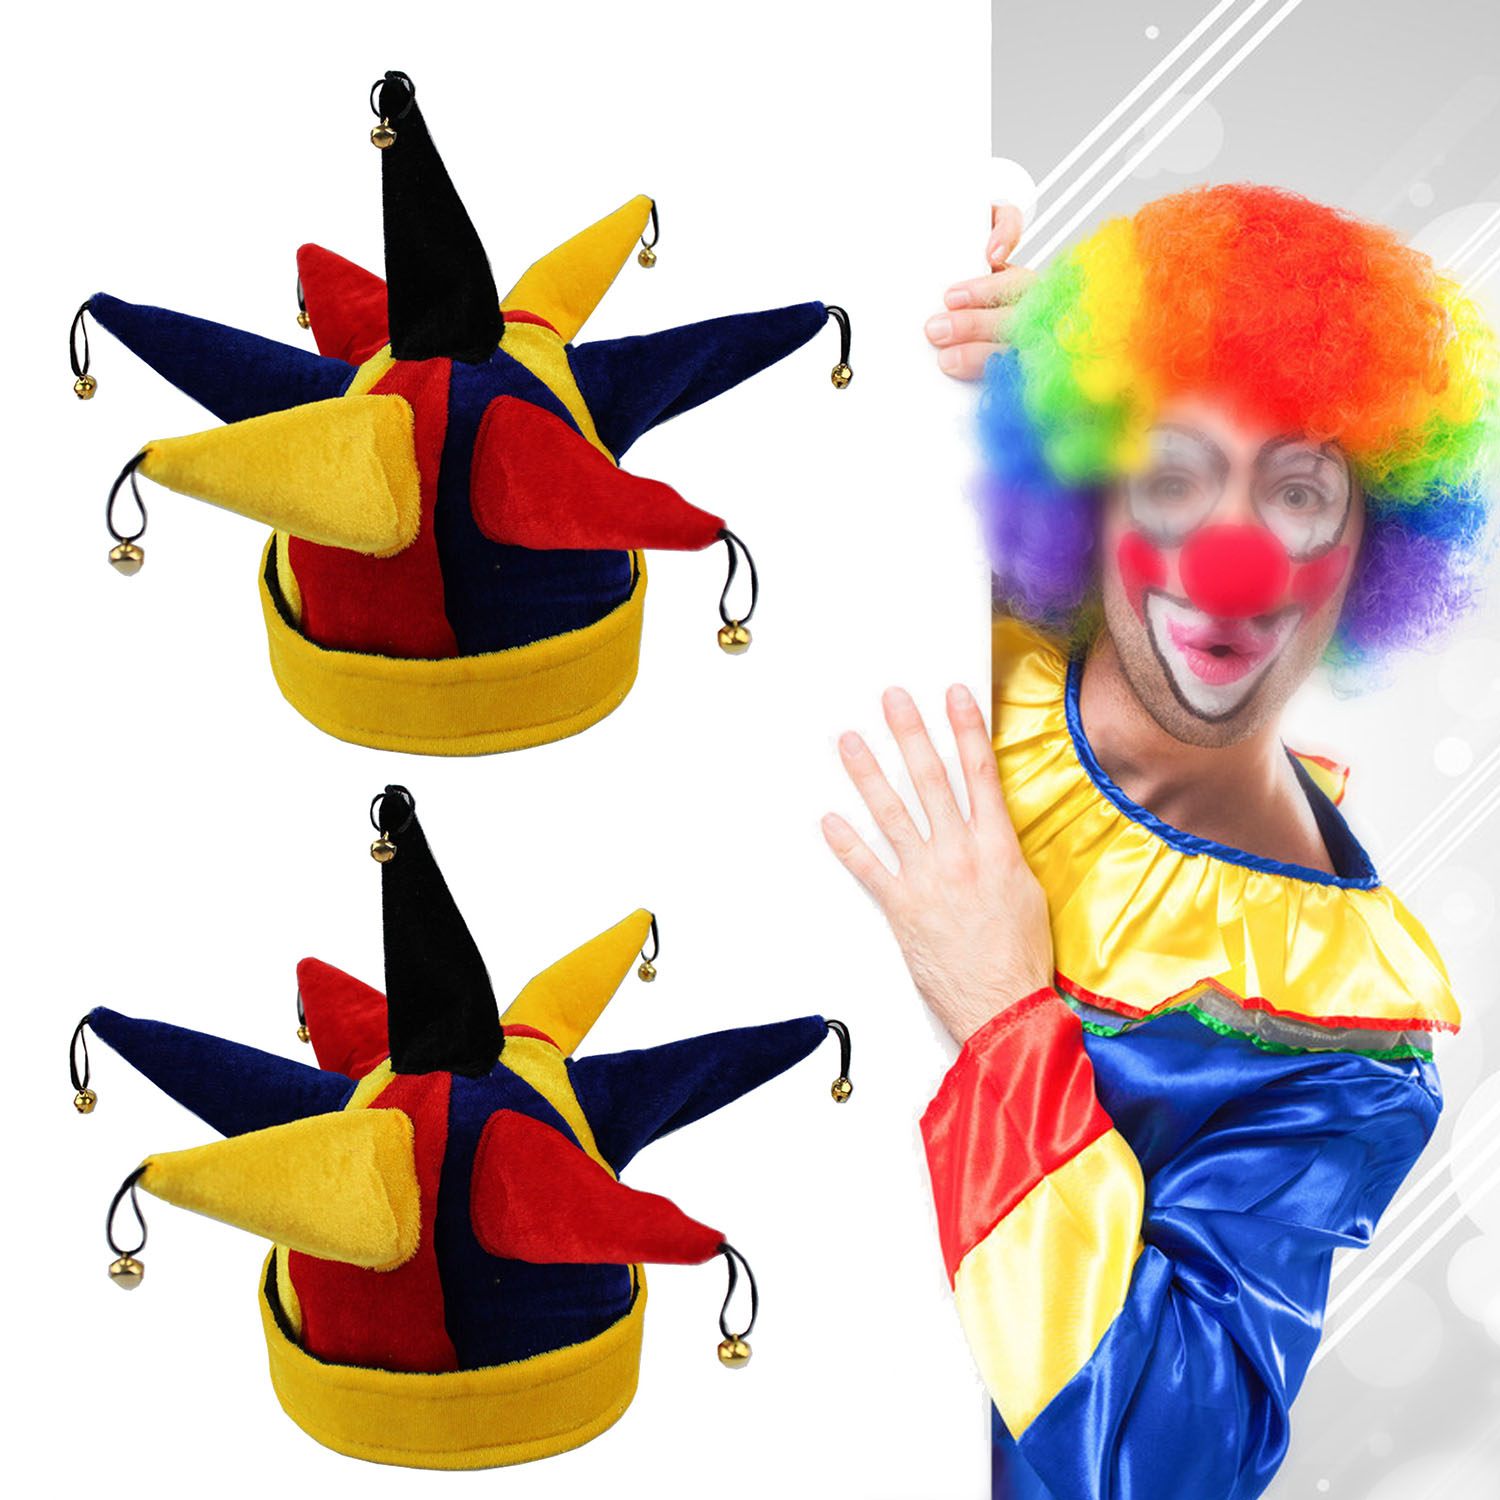 Behogar Funny Multicolor Jester Clown Hat Caps for Halloween Christmas Mardi Gras Party Costume Props Favors Decoration costume hat